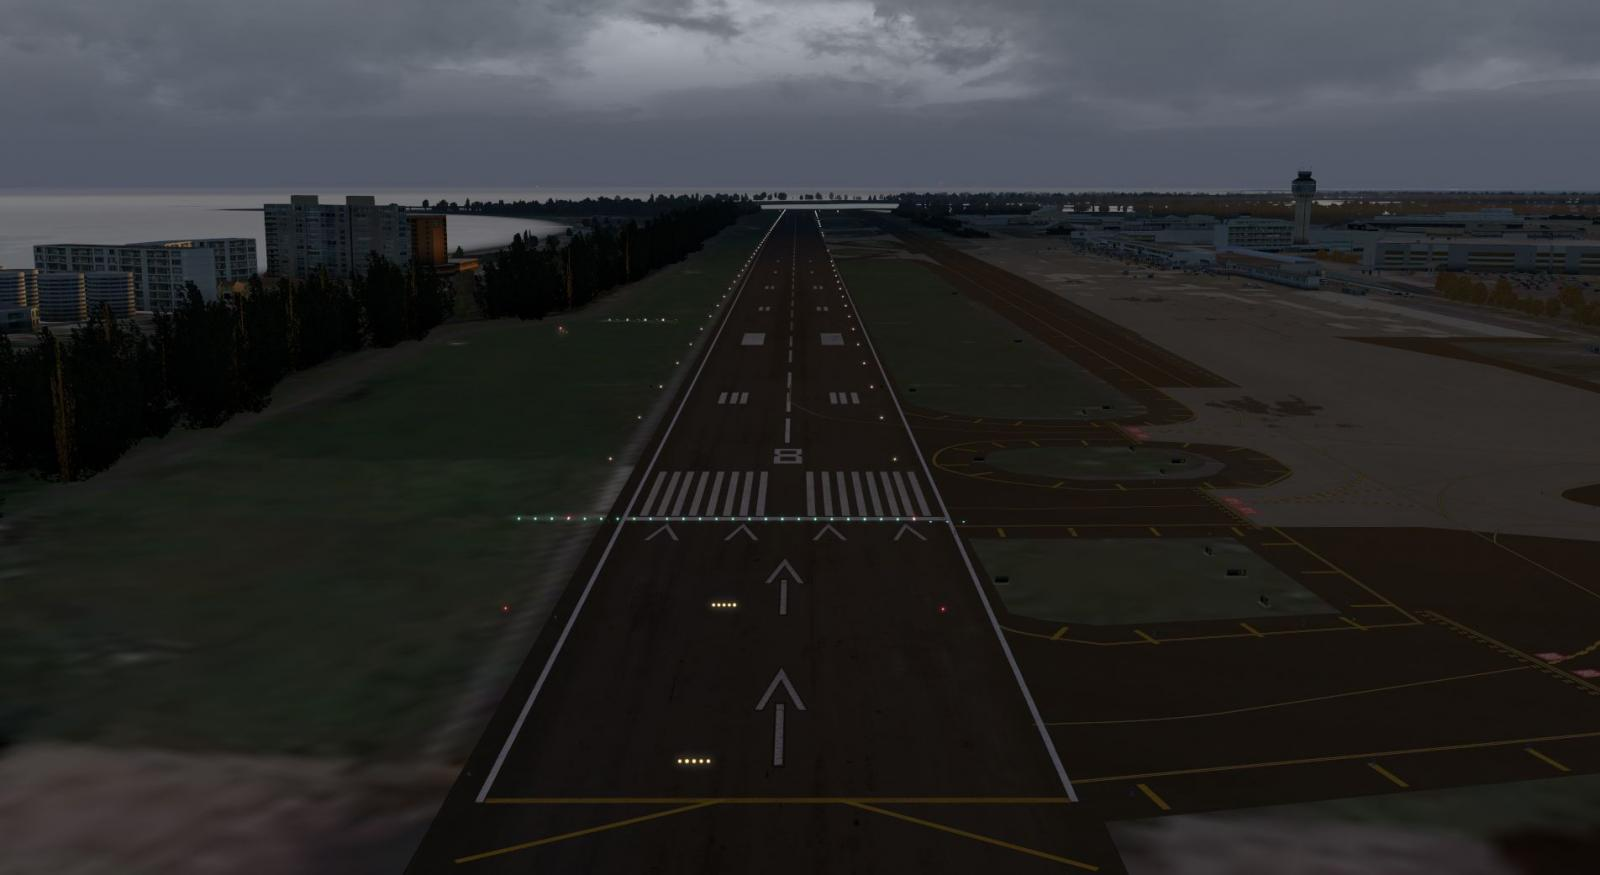 Tjsj fsx scenery | Problems adding scenery to FSX - 2019-03-16